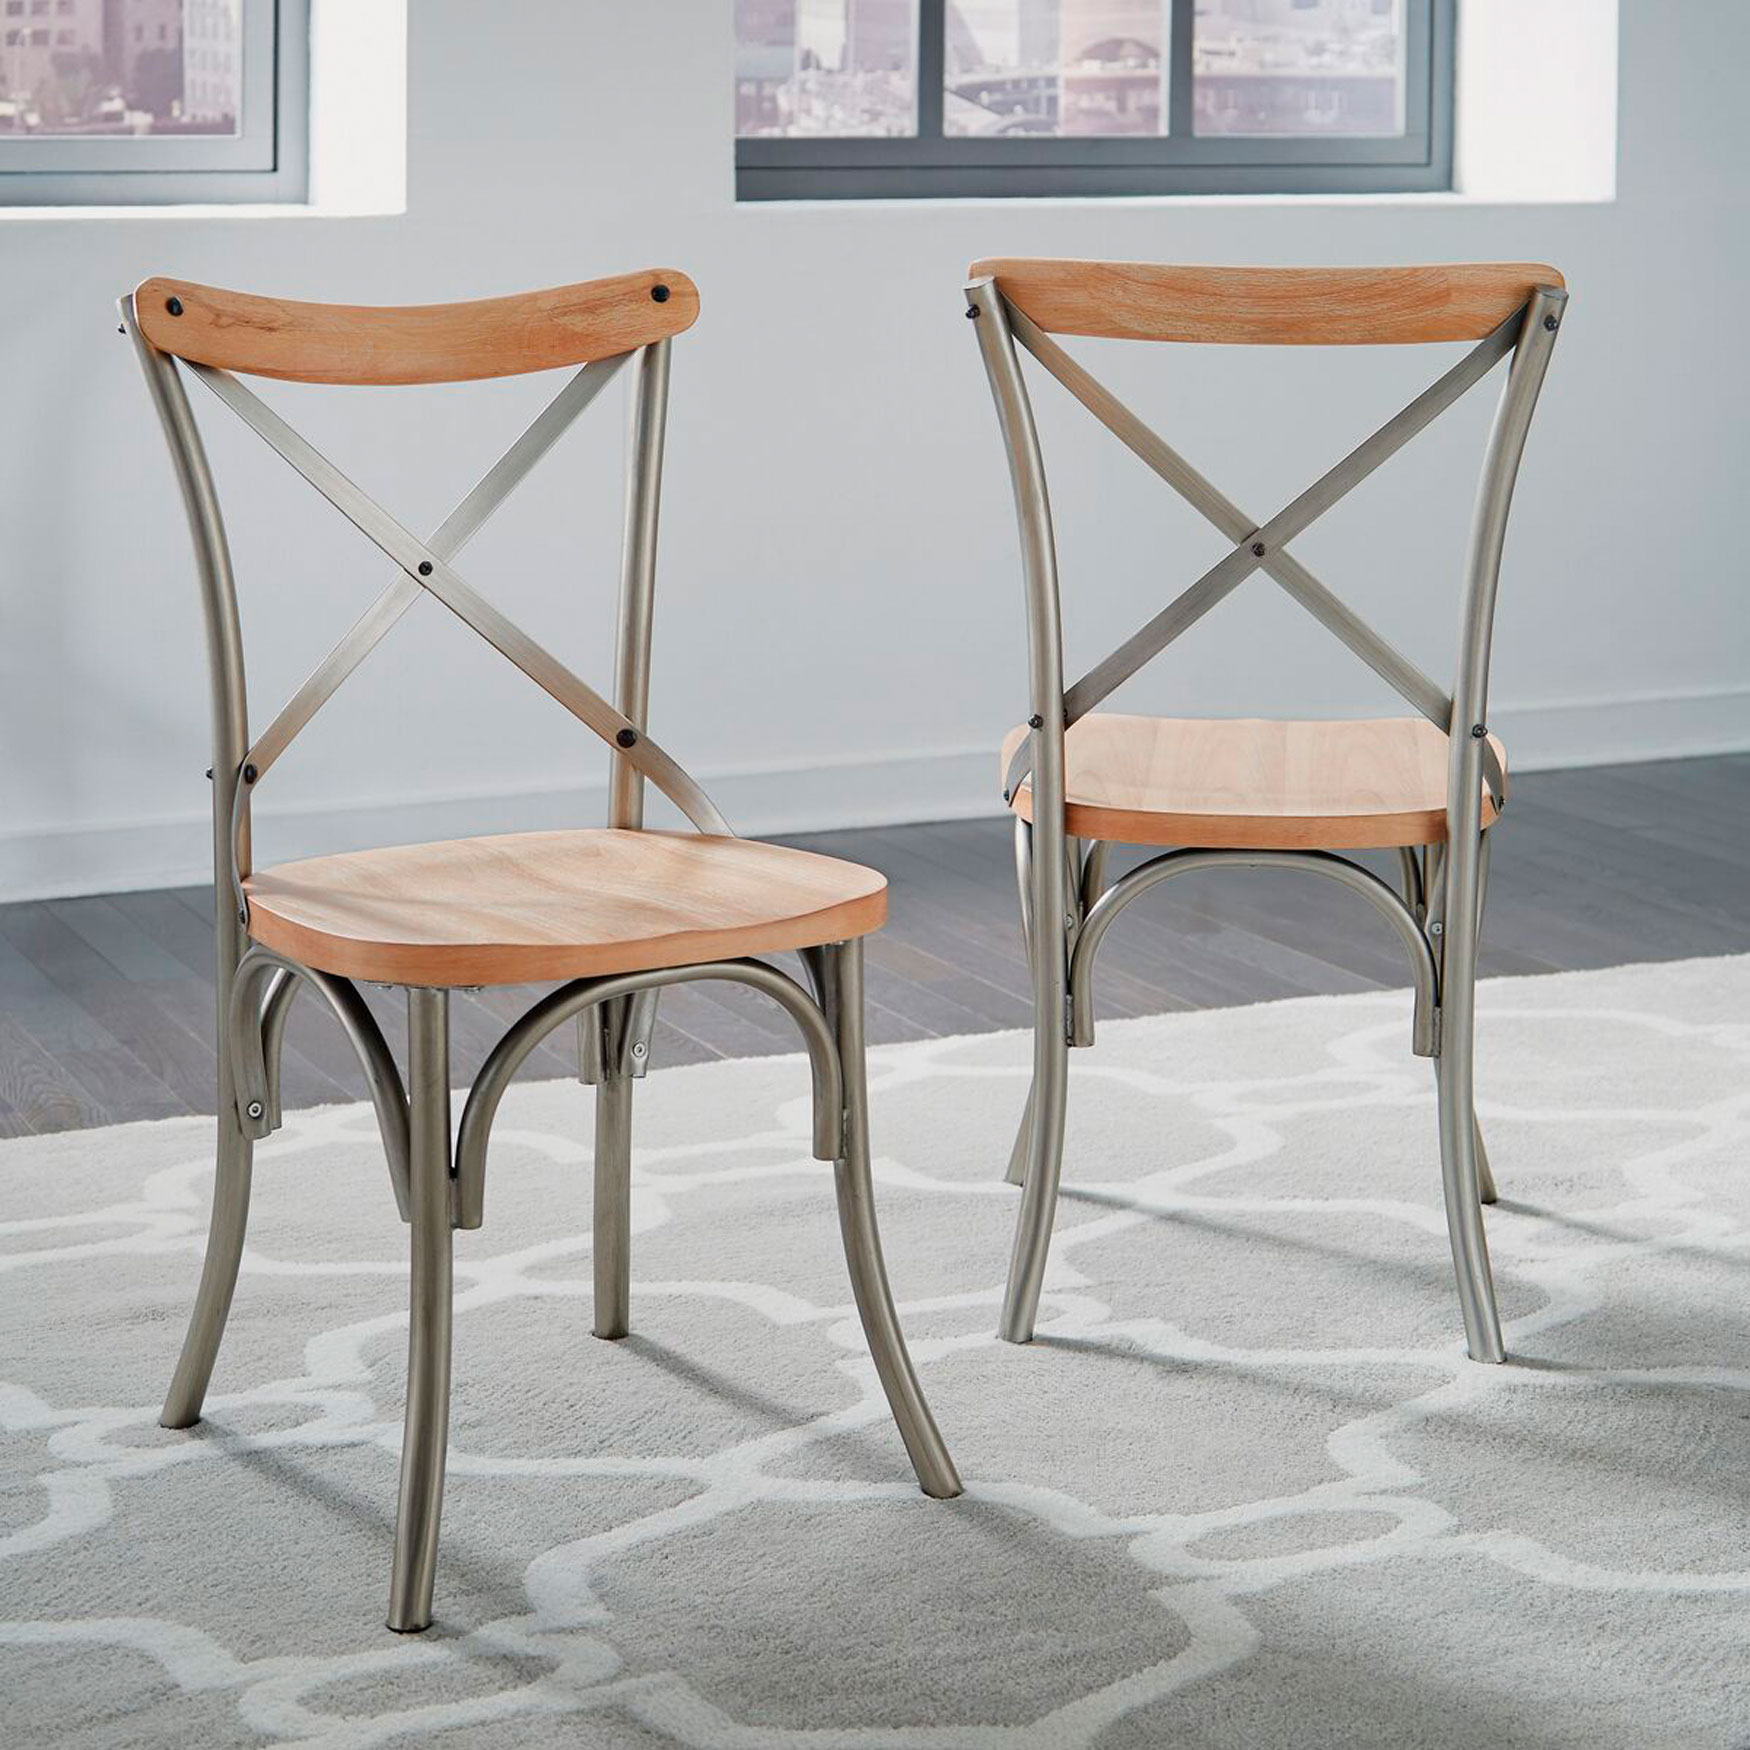 New Orleans Dining Chair, Set of 2, WHITE WASHED